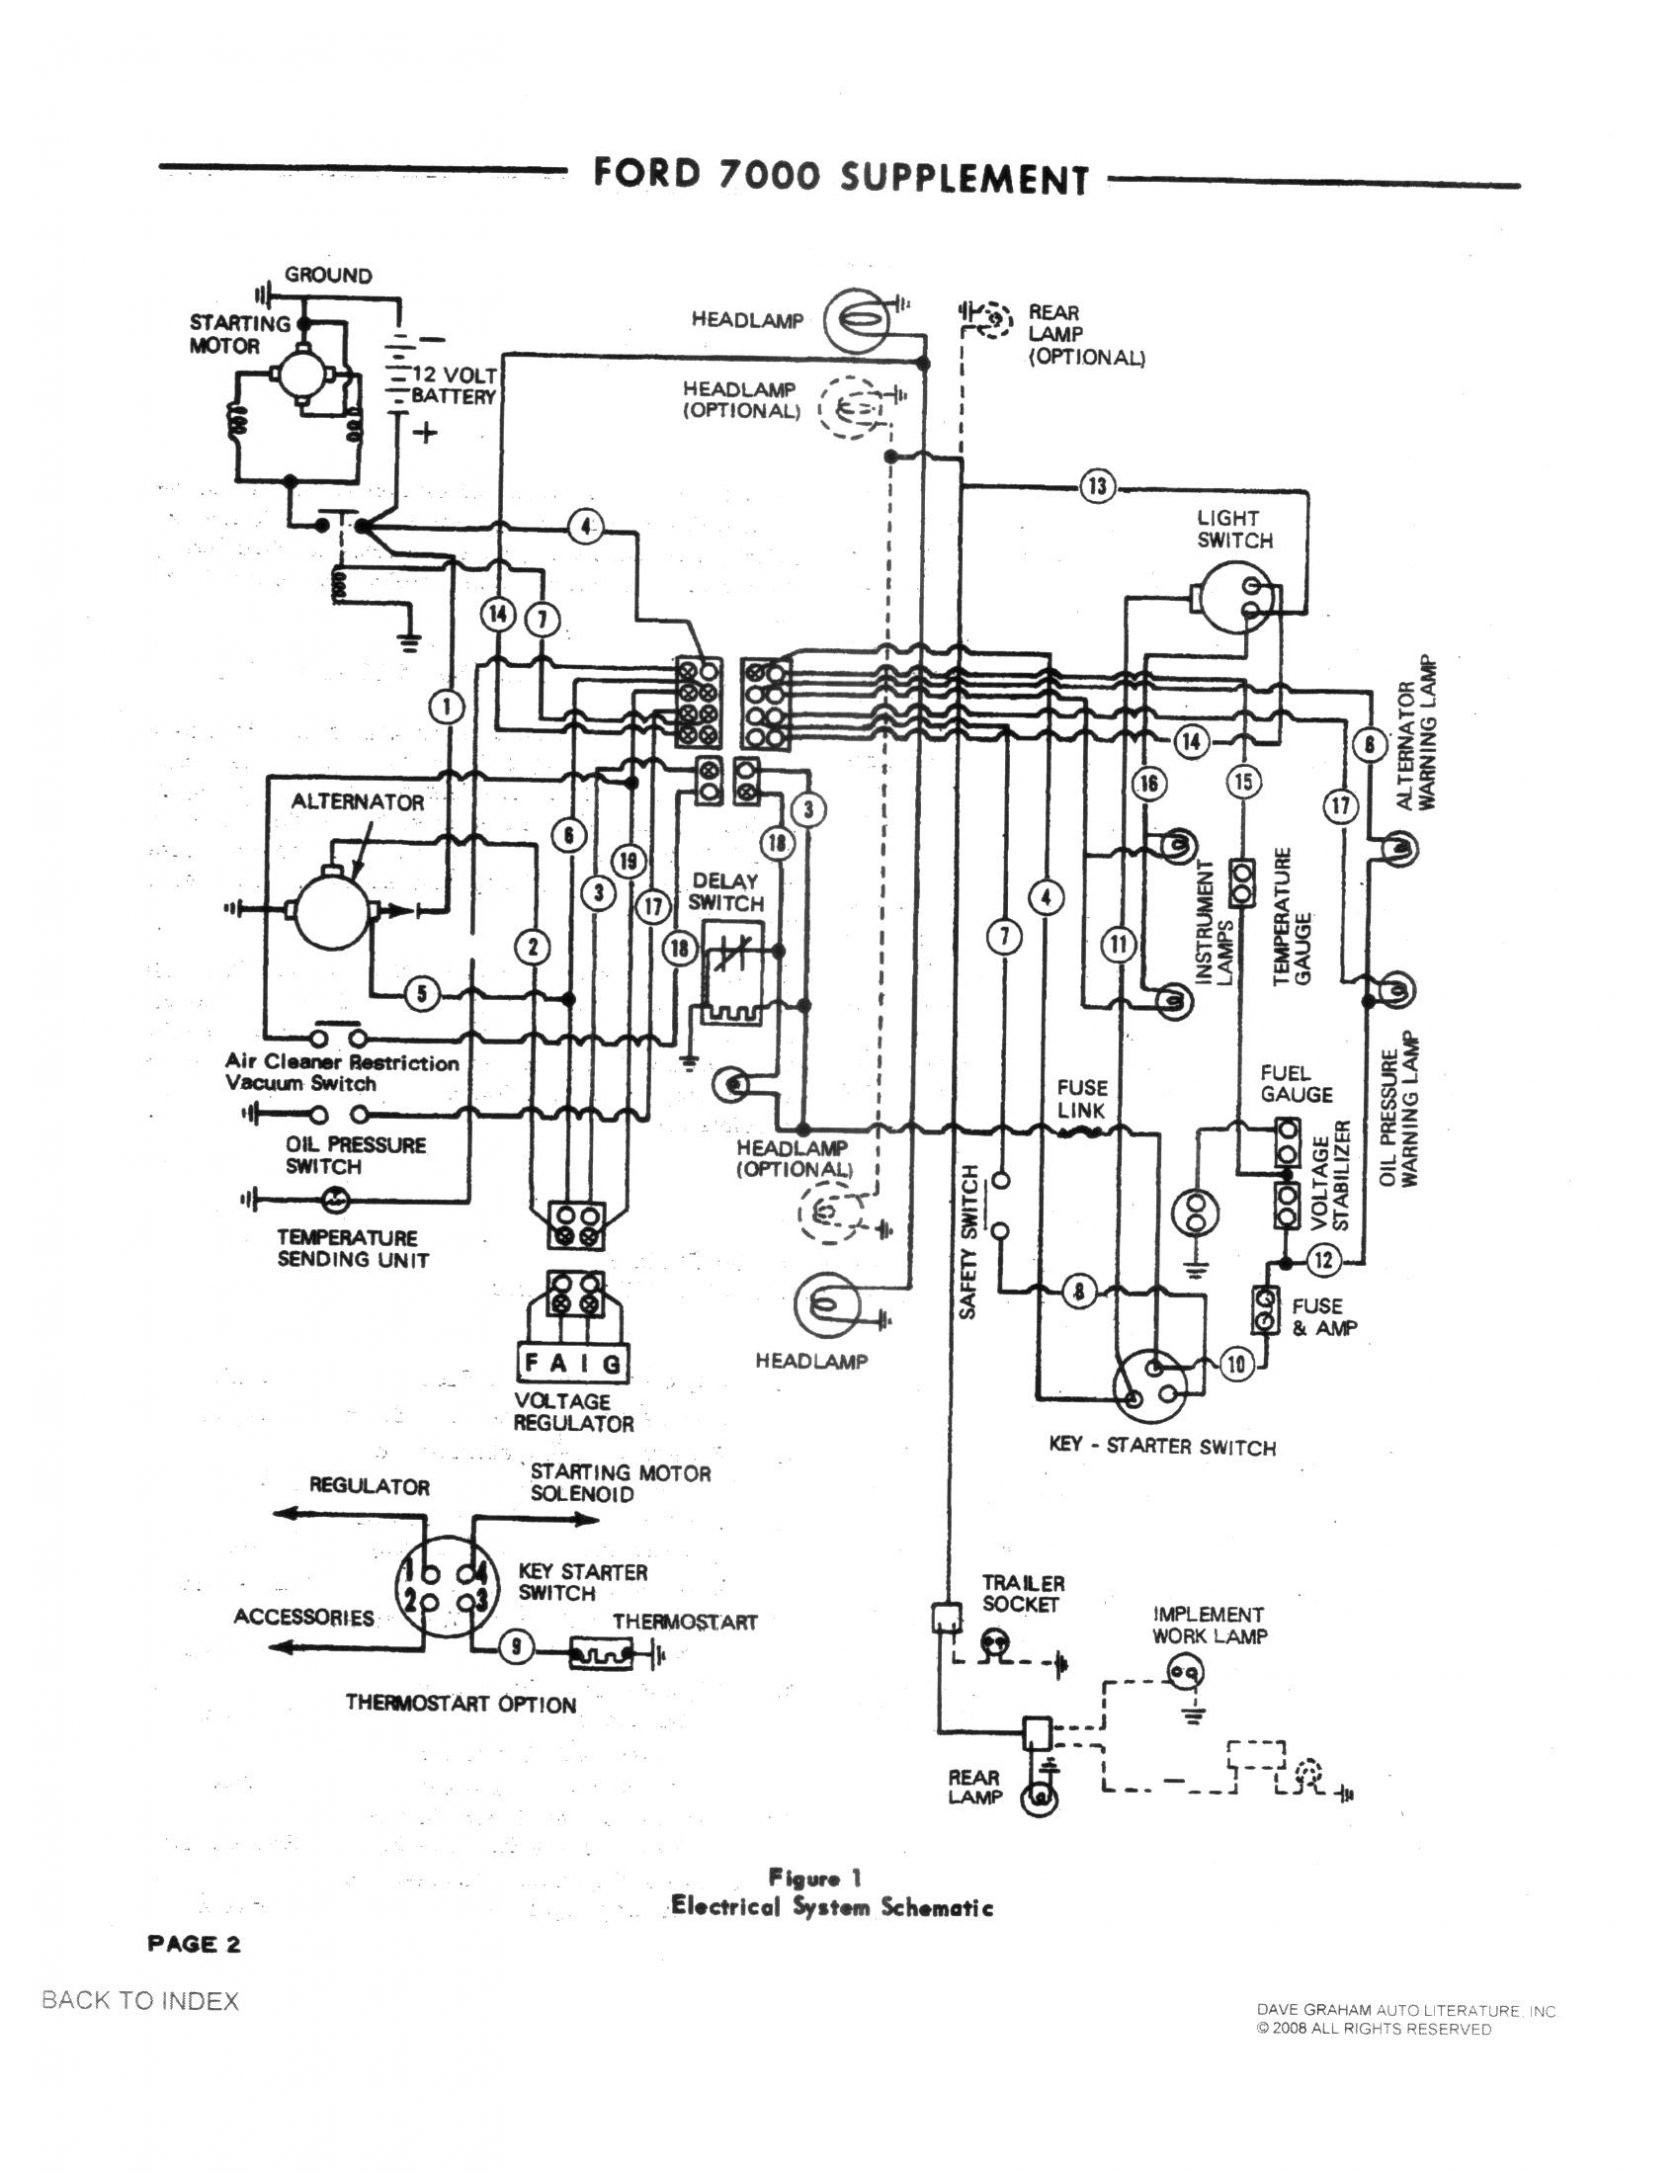 Kubota Ignition Switch Wiring Diagram Awesome Ic Alternator Best - Kubota Ignition Switch Wiring Diagram